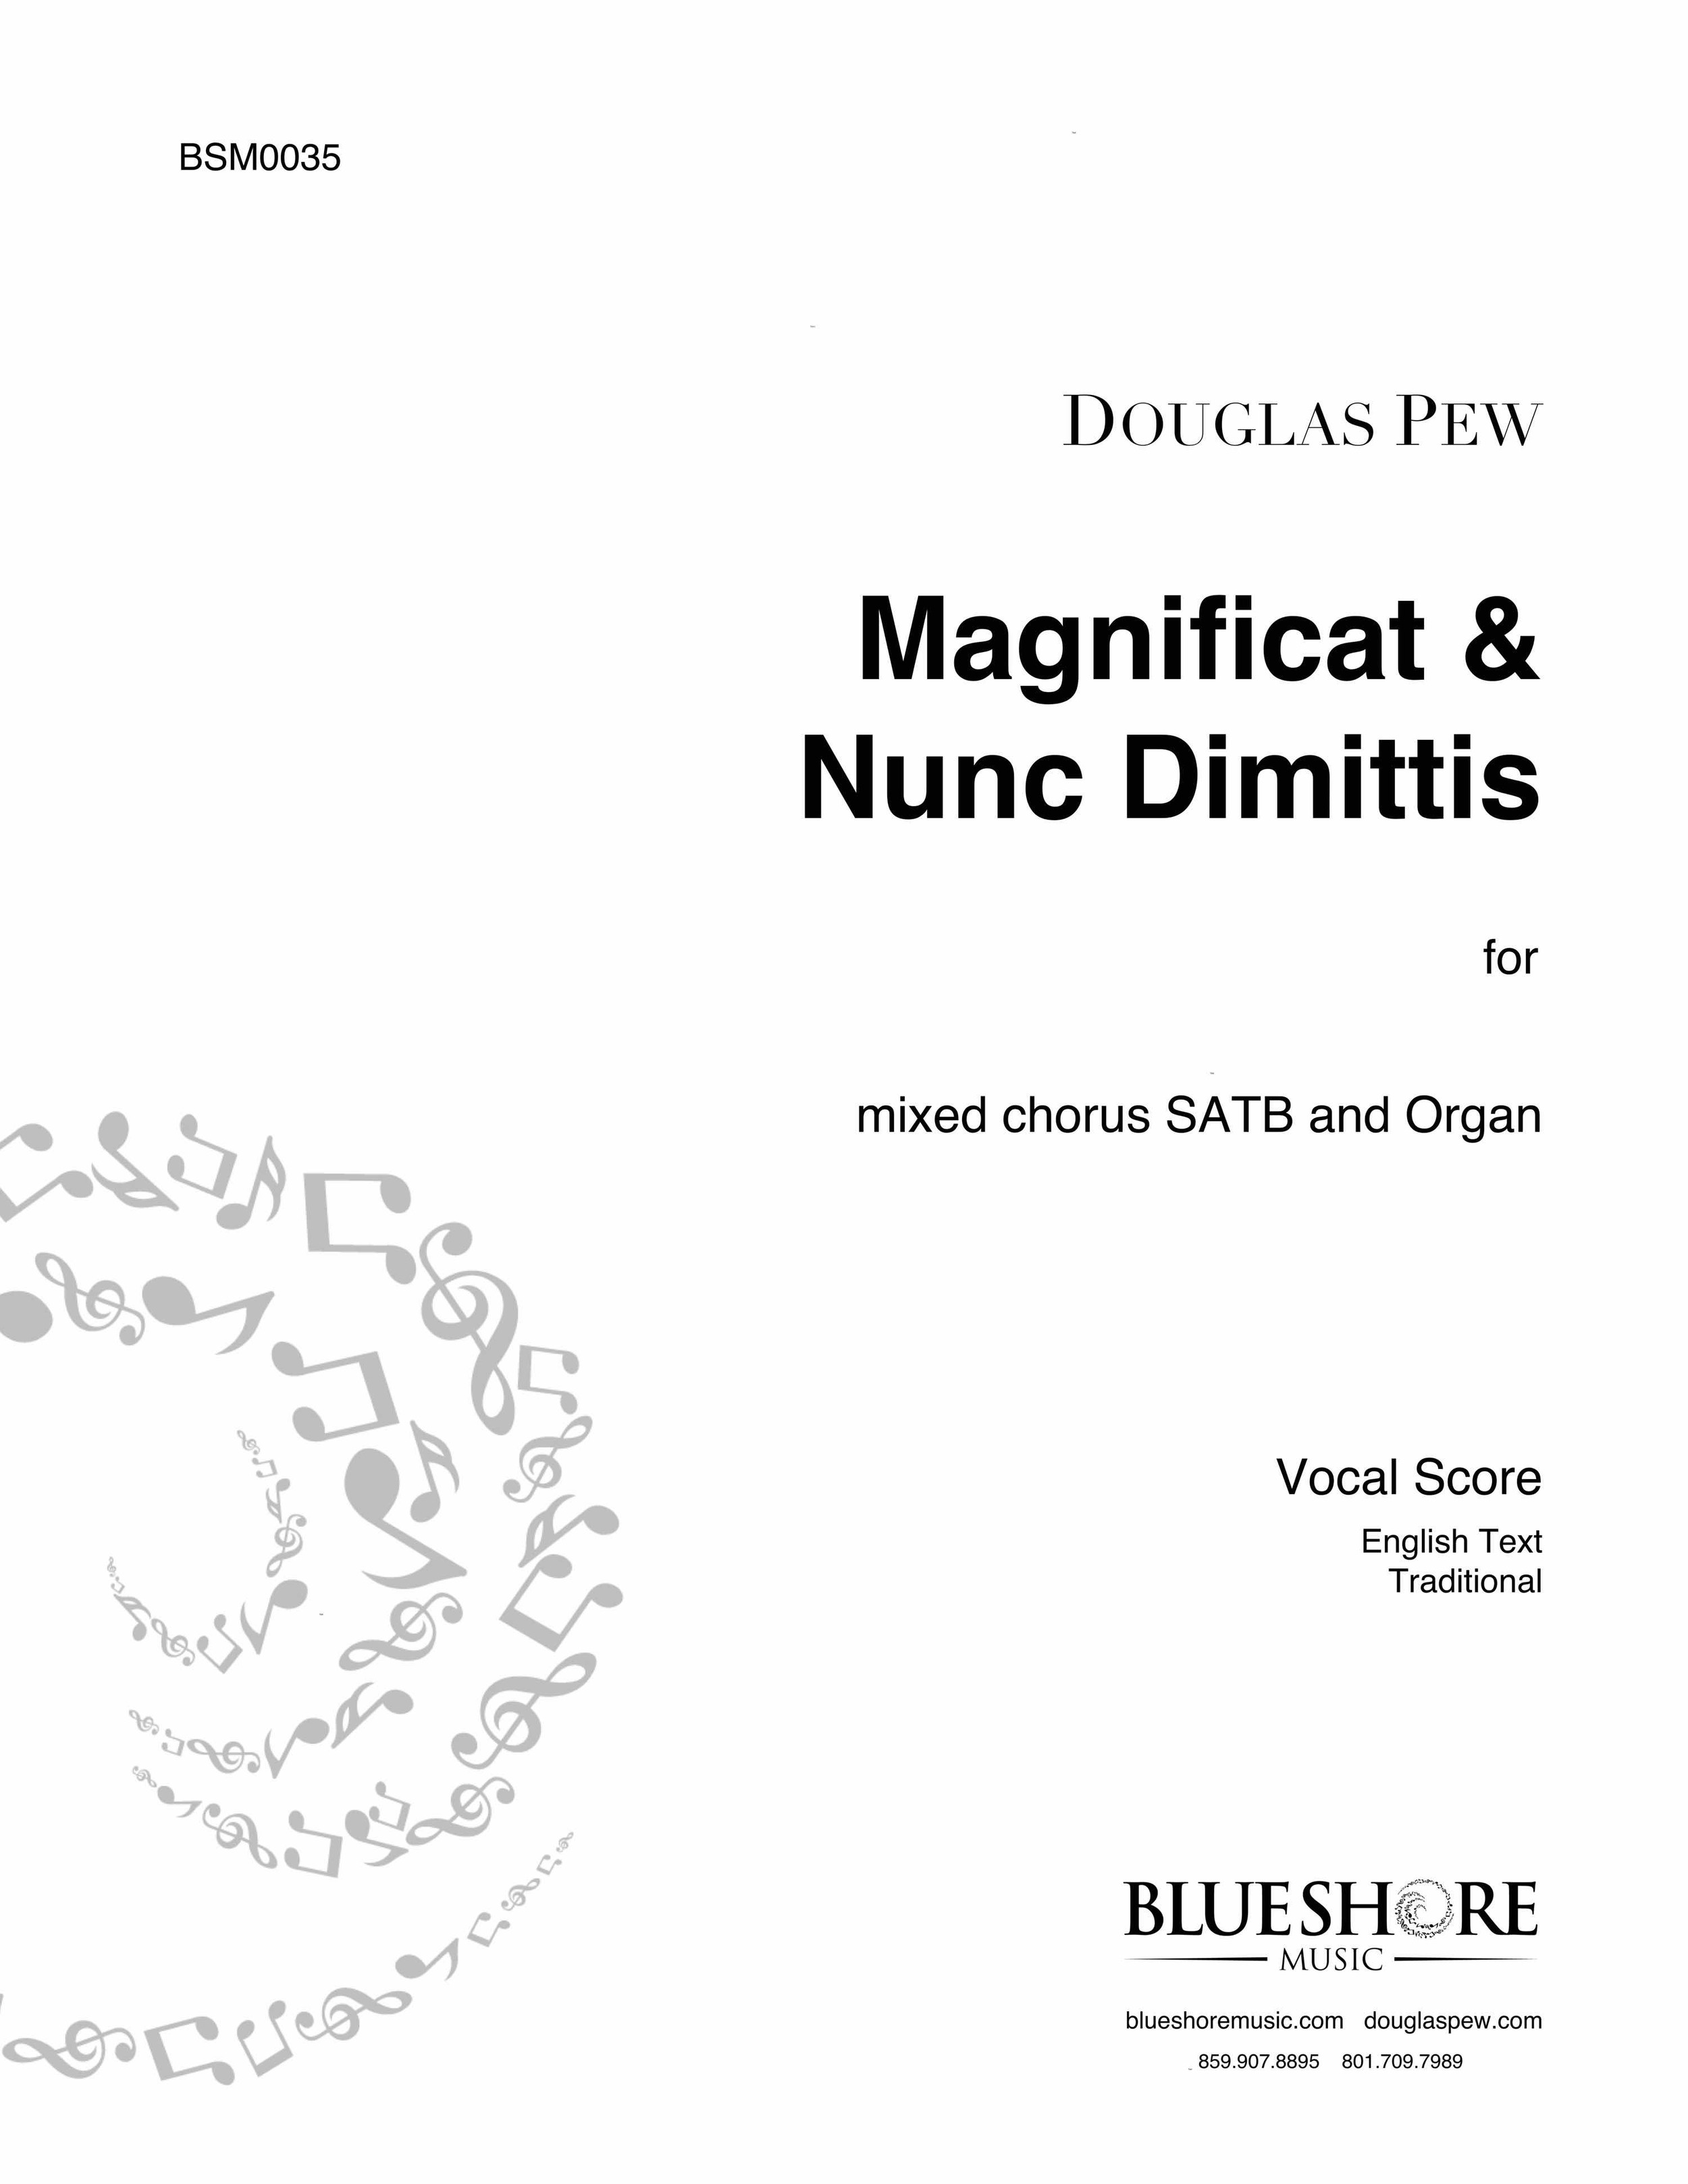 Magnificat & Nunc Dimittis (St. Thomas Service) , for SATB and Organ